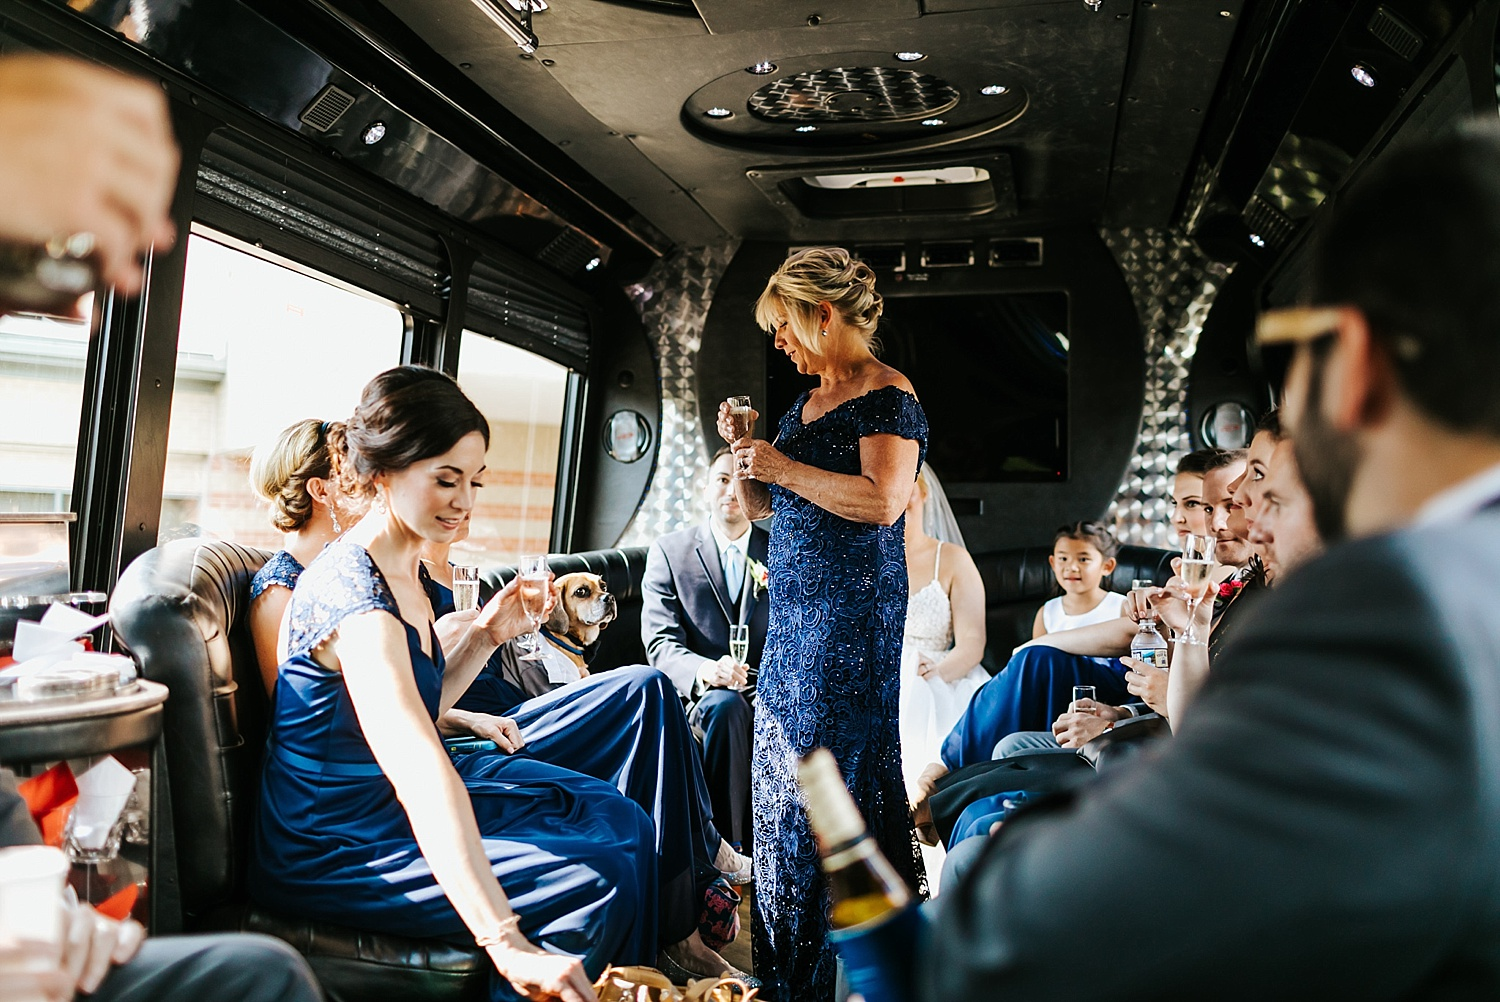 Wedding party celebrating in a limousine